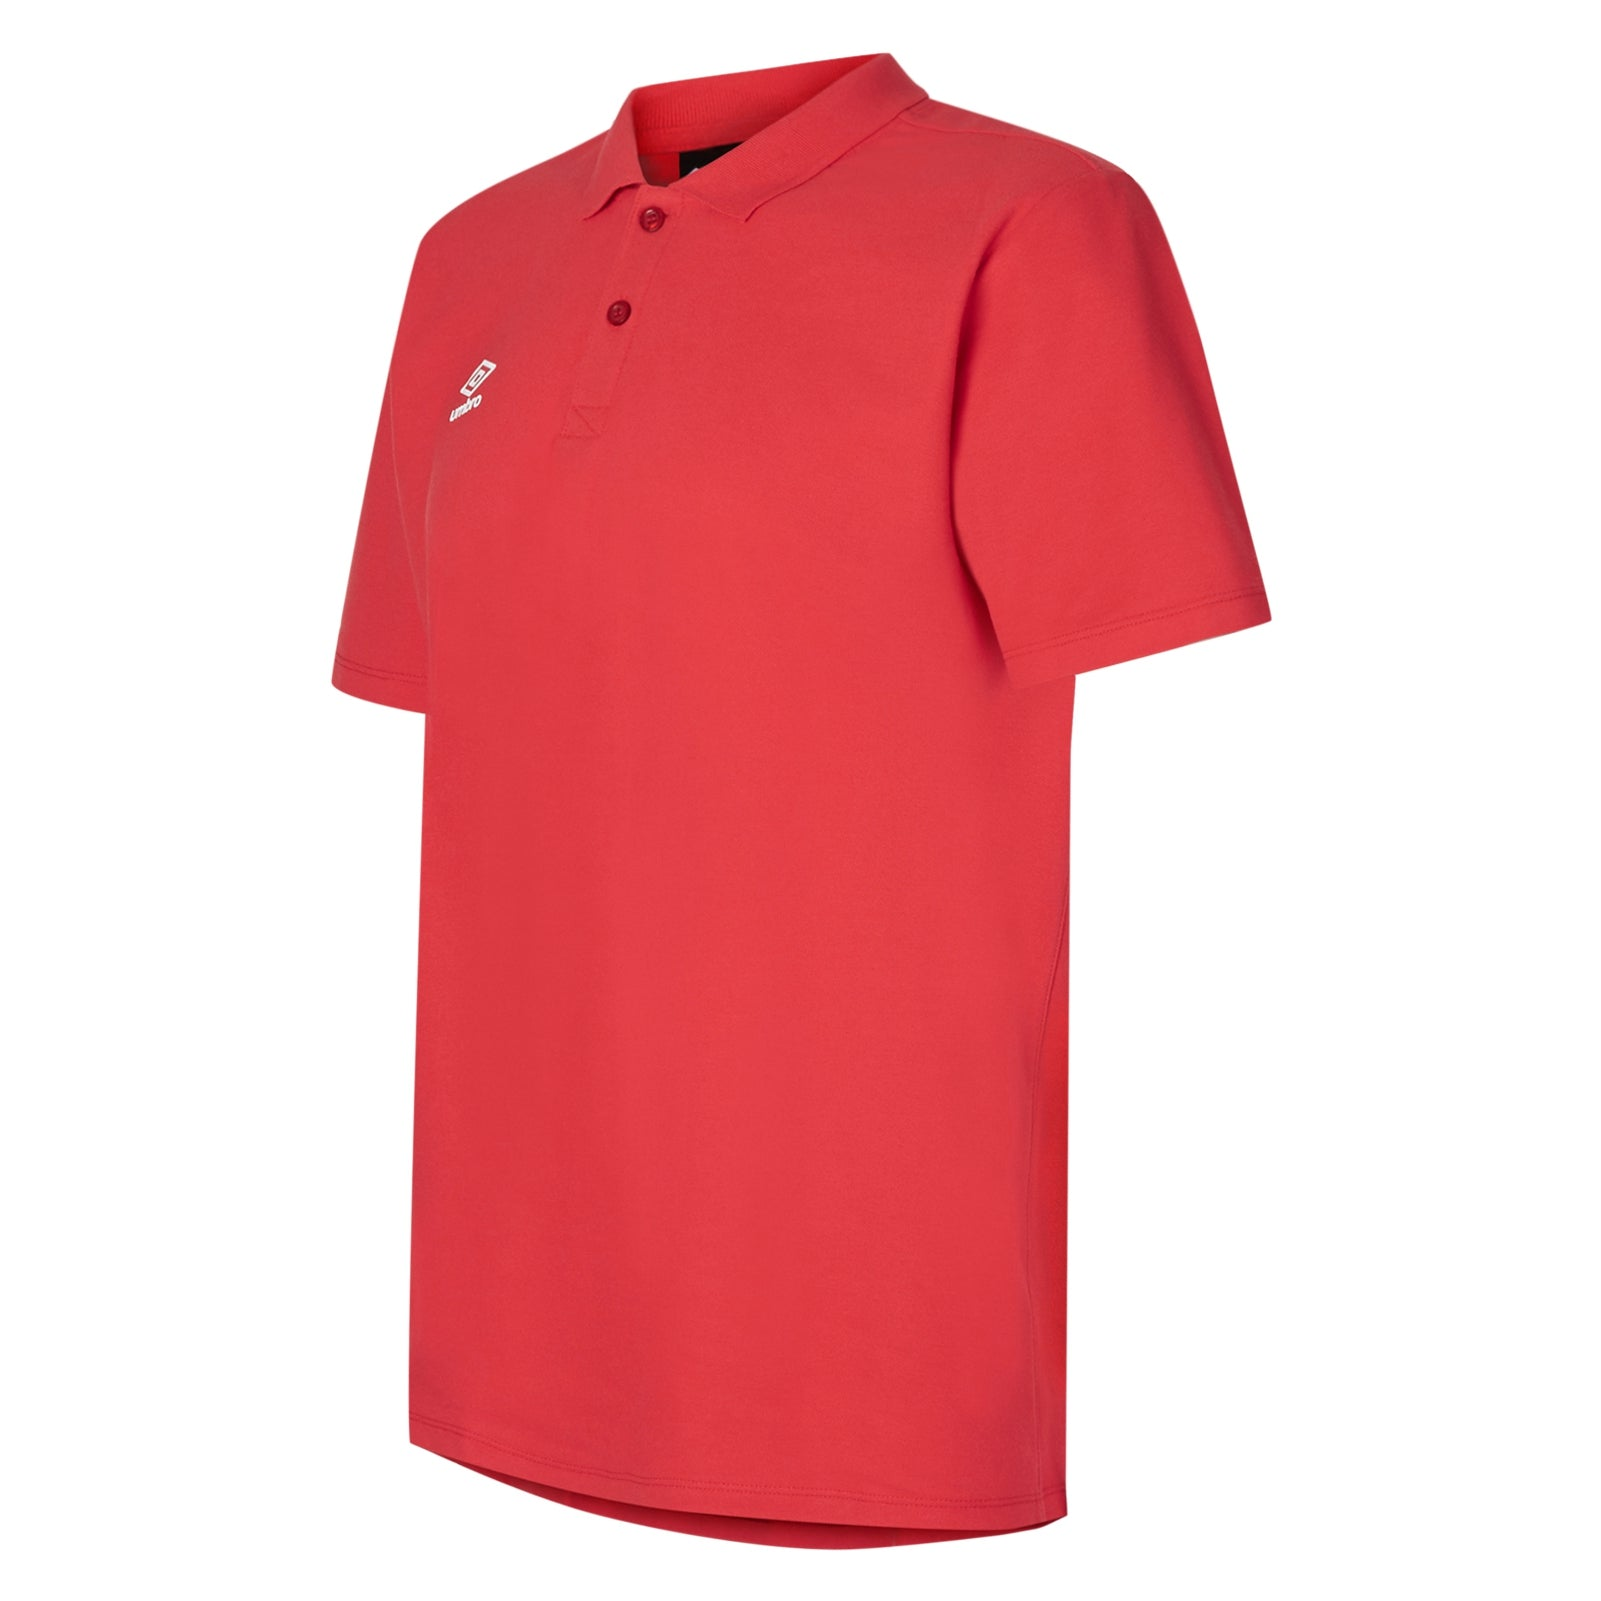 Umbro Club Essential Polo in vemillion (red) with white Umbro Diamond logo on right chest